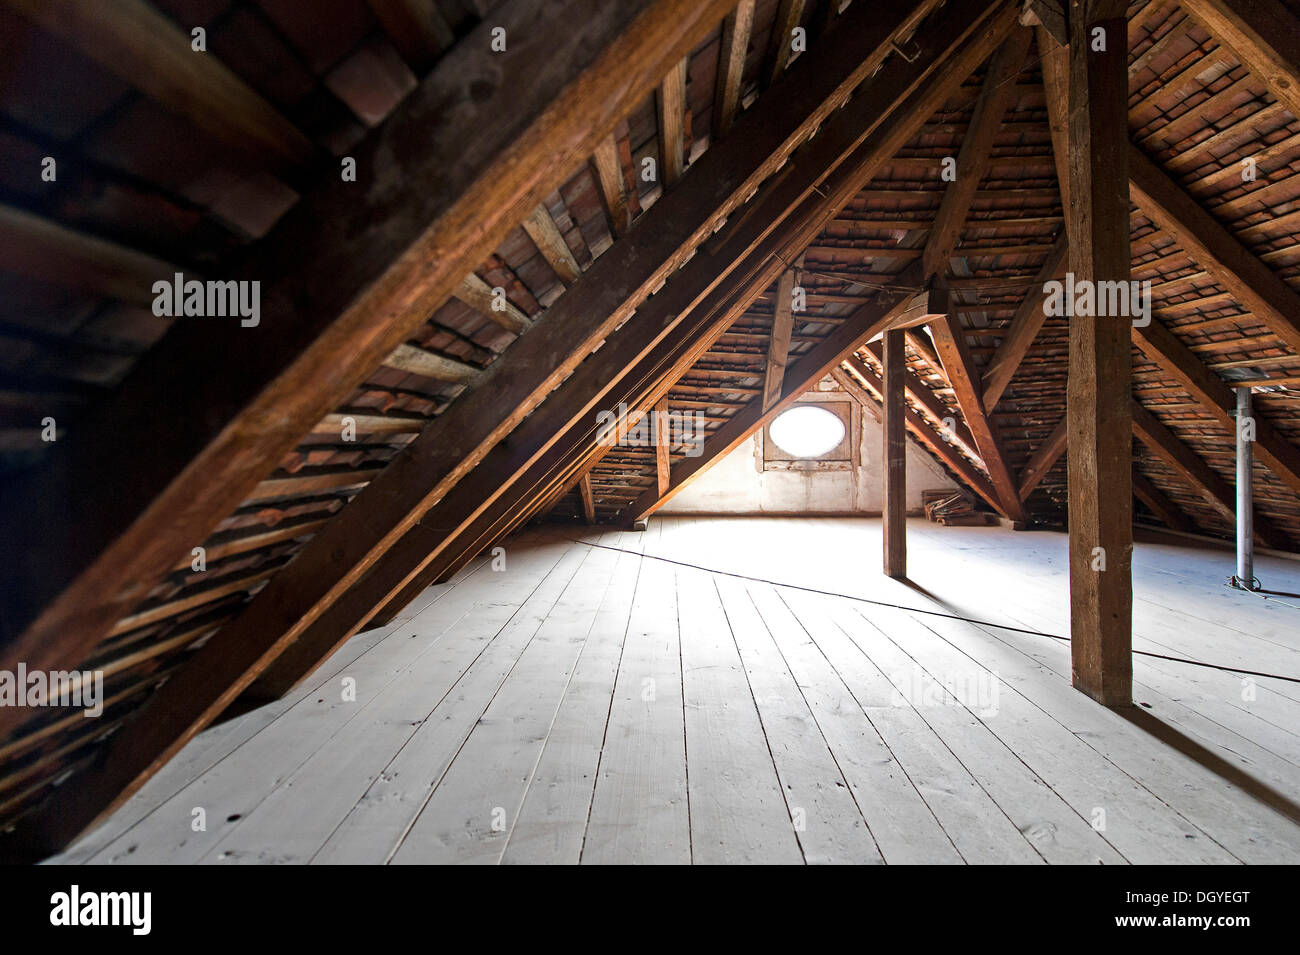 Wooden beams, attic, wooden roof of an old building, Stuttgart, Baden-Wuerttemberg - Stock Image